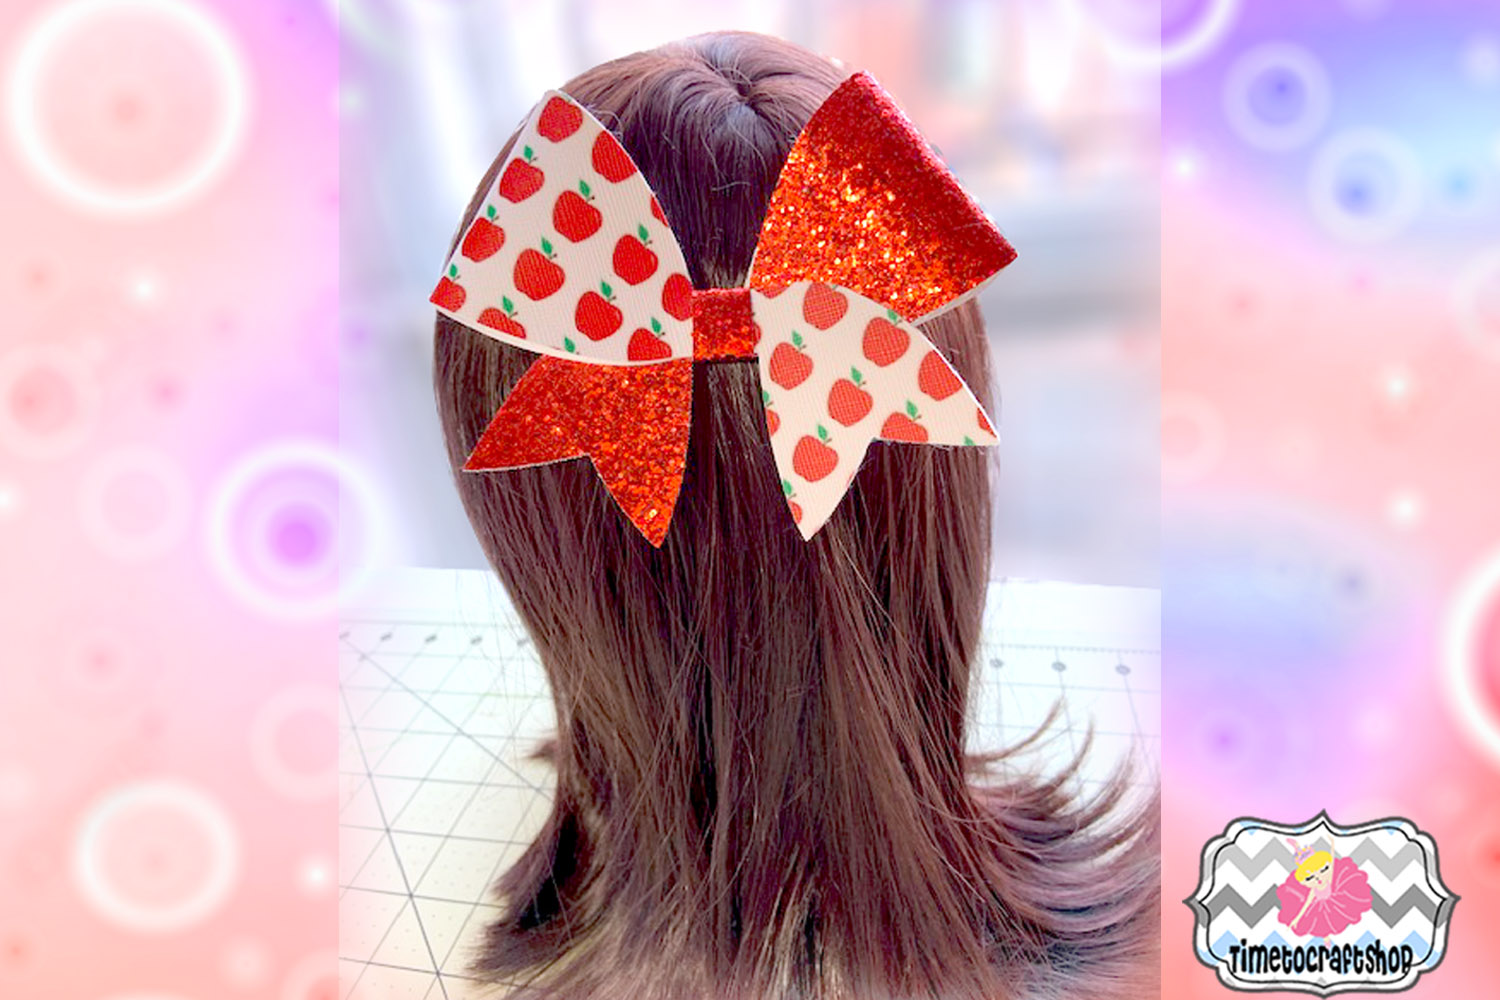 Cheer Bow Short Tail Template Svg. Dxf. Pdf. Eps. Jpg. Png example image 2